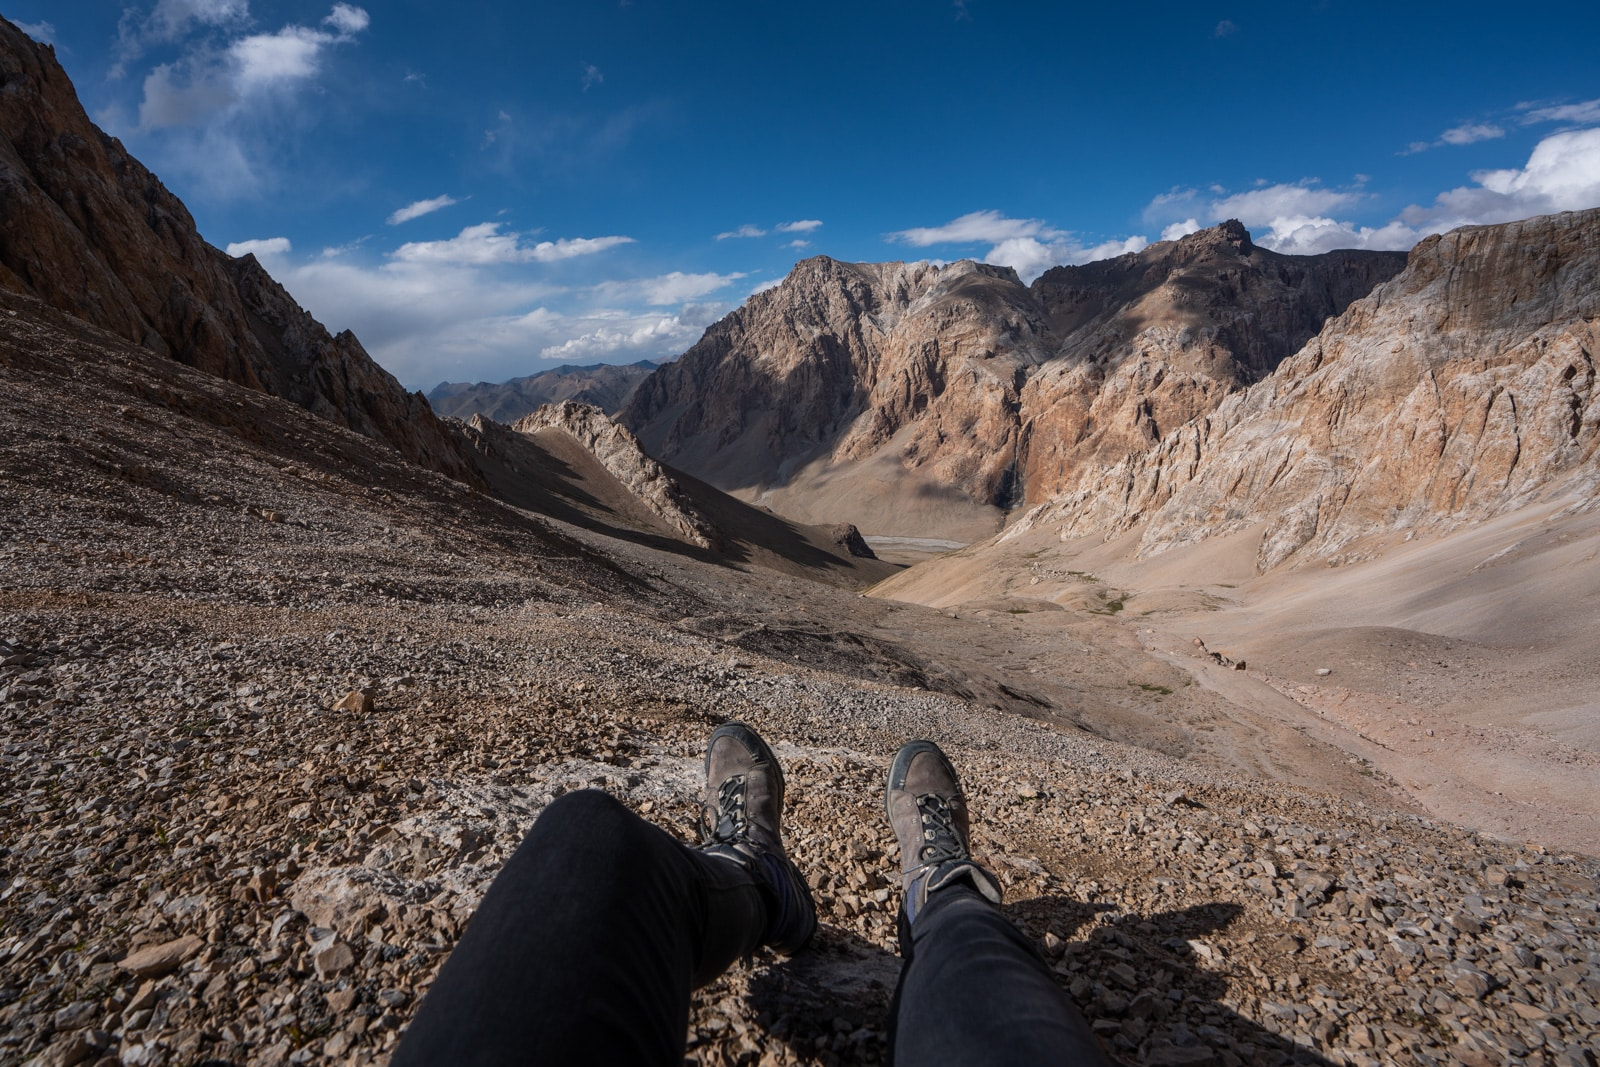 Taking a break on a mountain pass while trekking in the Pamir Mountains around Shaimak